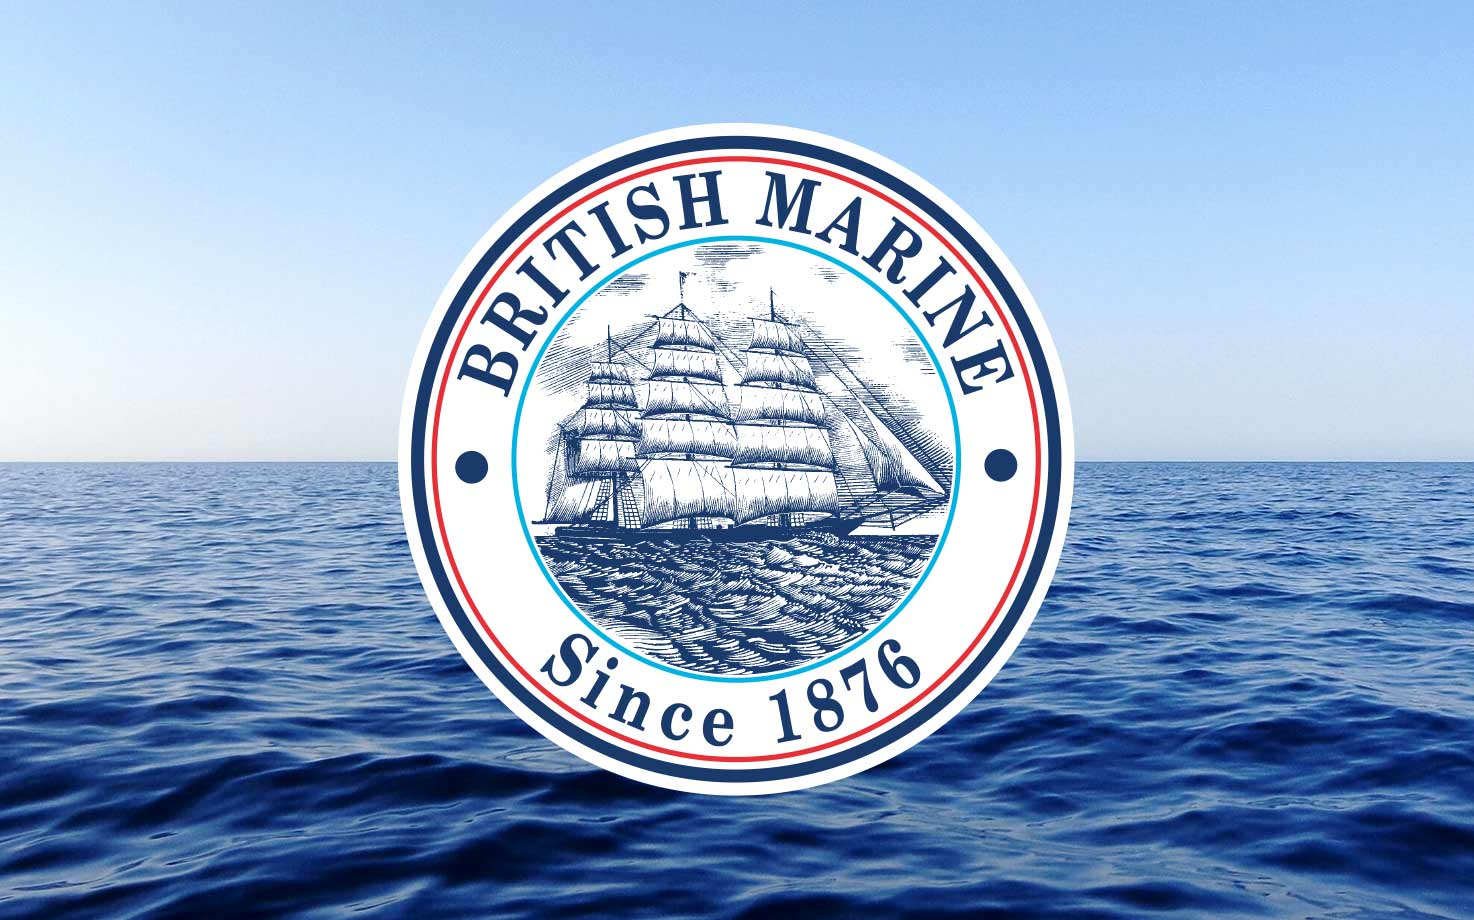 Changes to British Marine Charterers Terms and Conditions – 2018 Edition